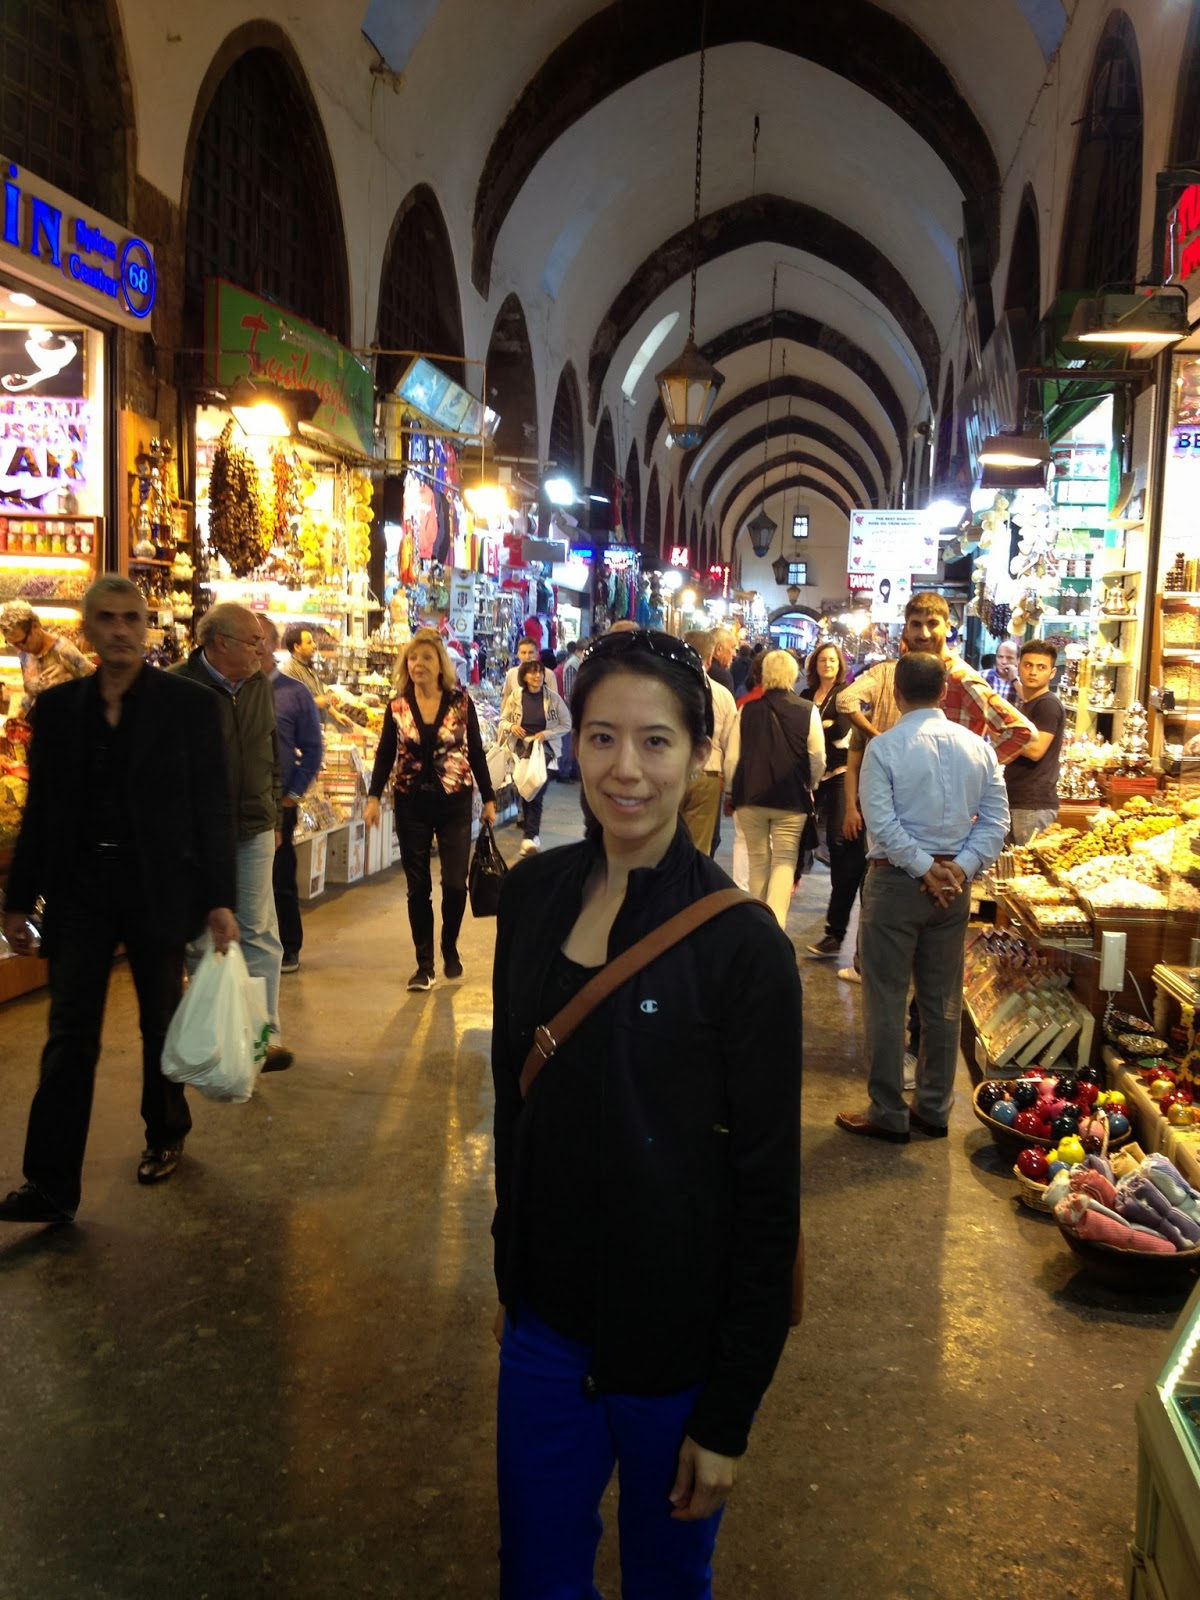 Istanbul - At the Spice Bazaar